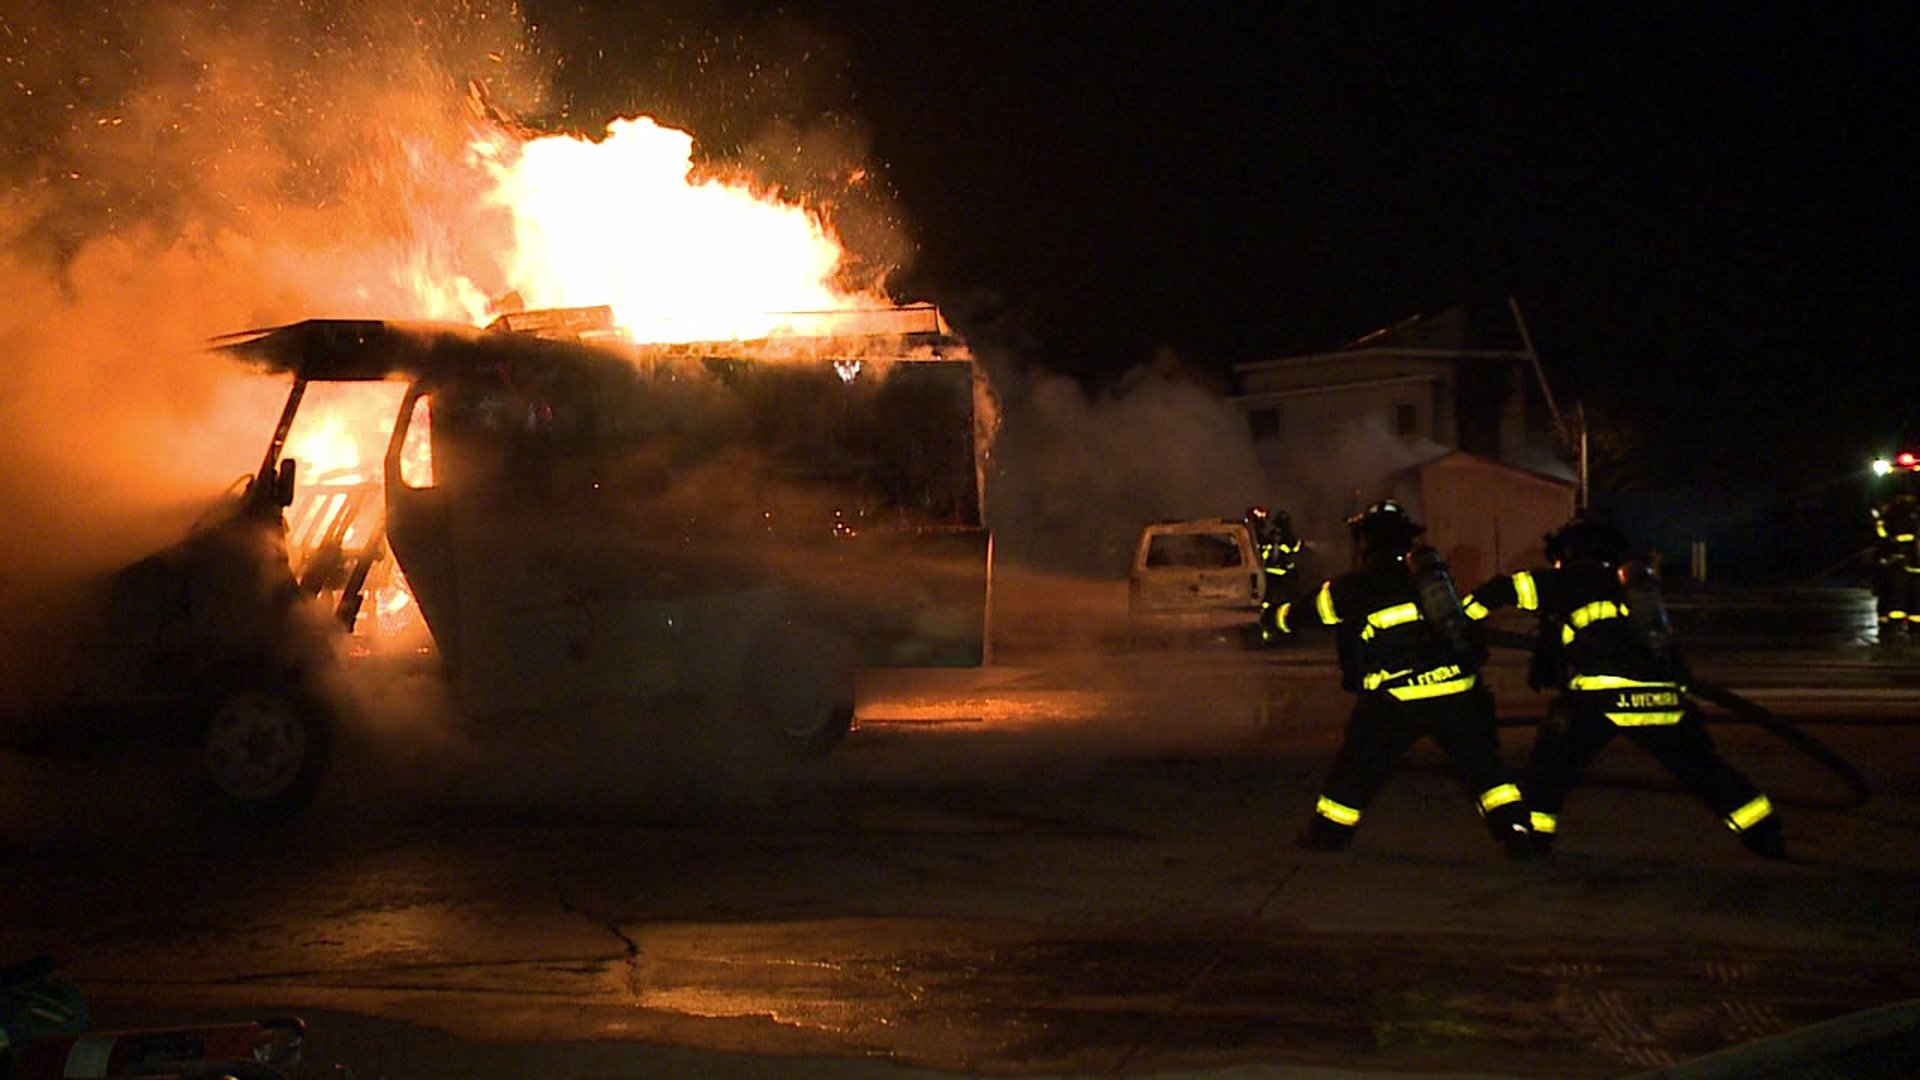 Firefighter recruits face tough test on 'Hell Night'